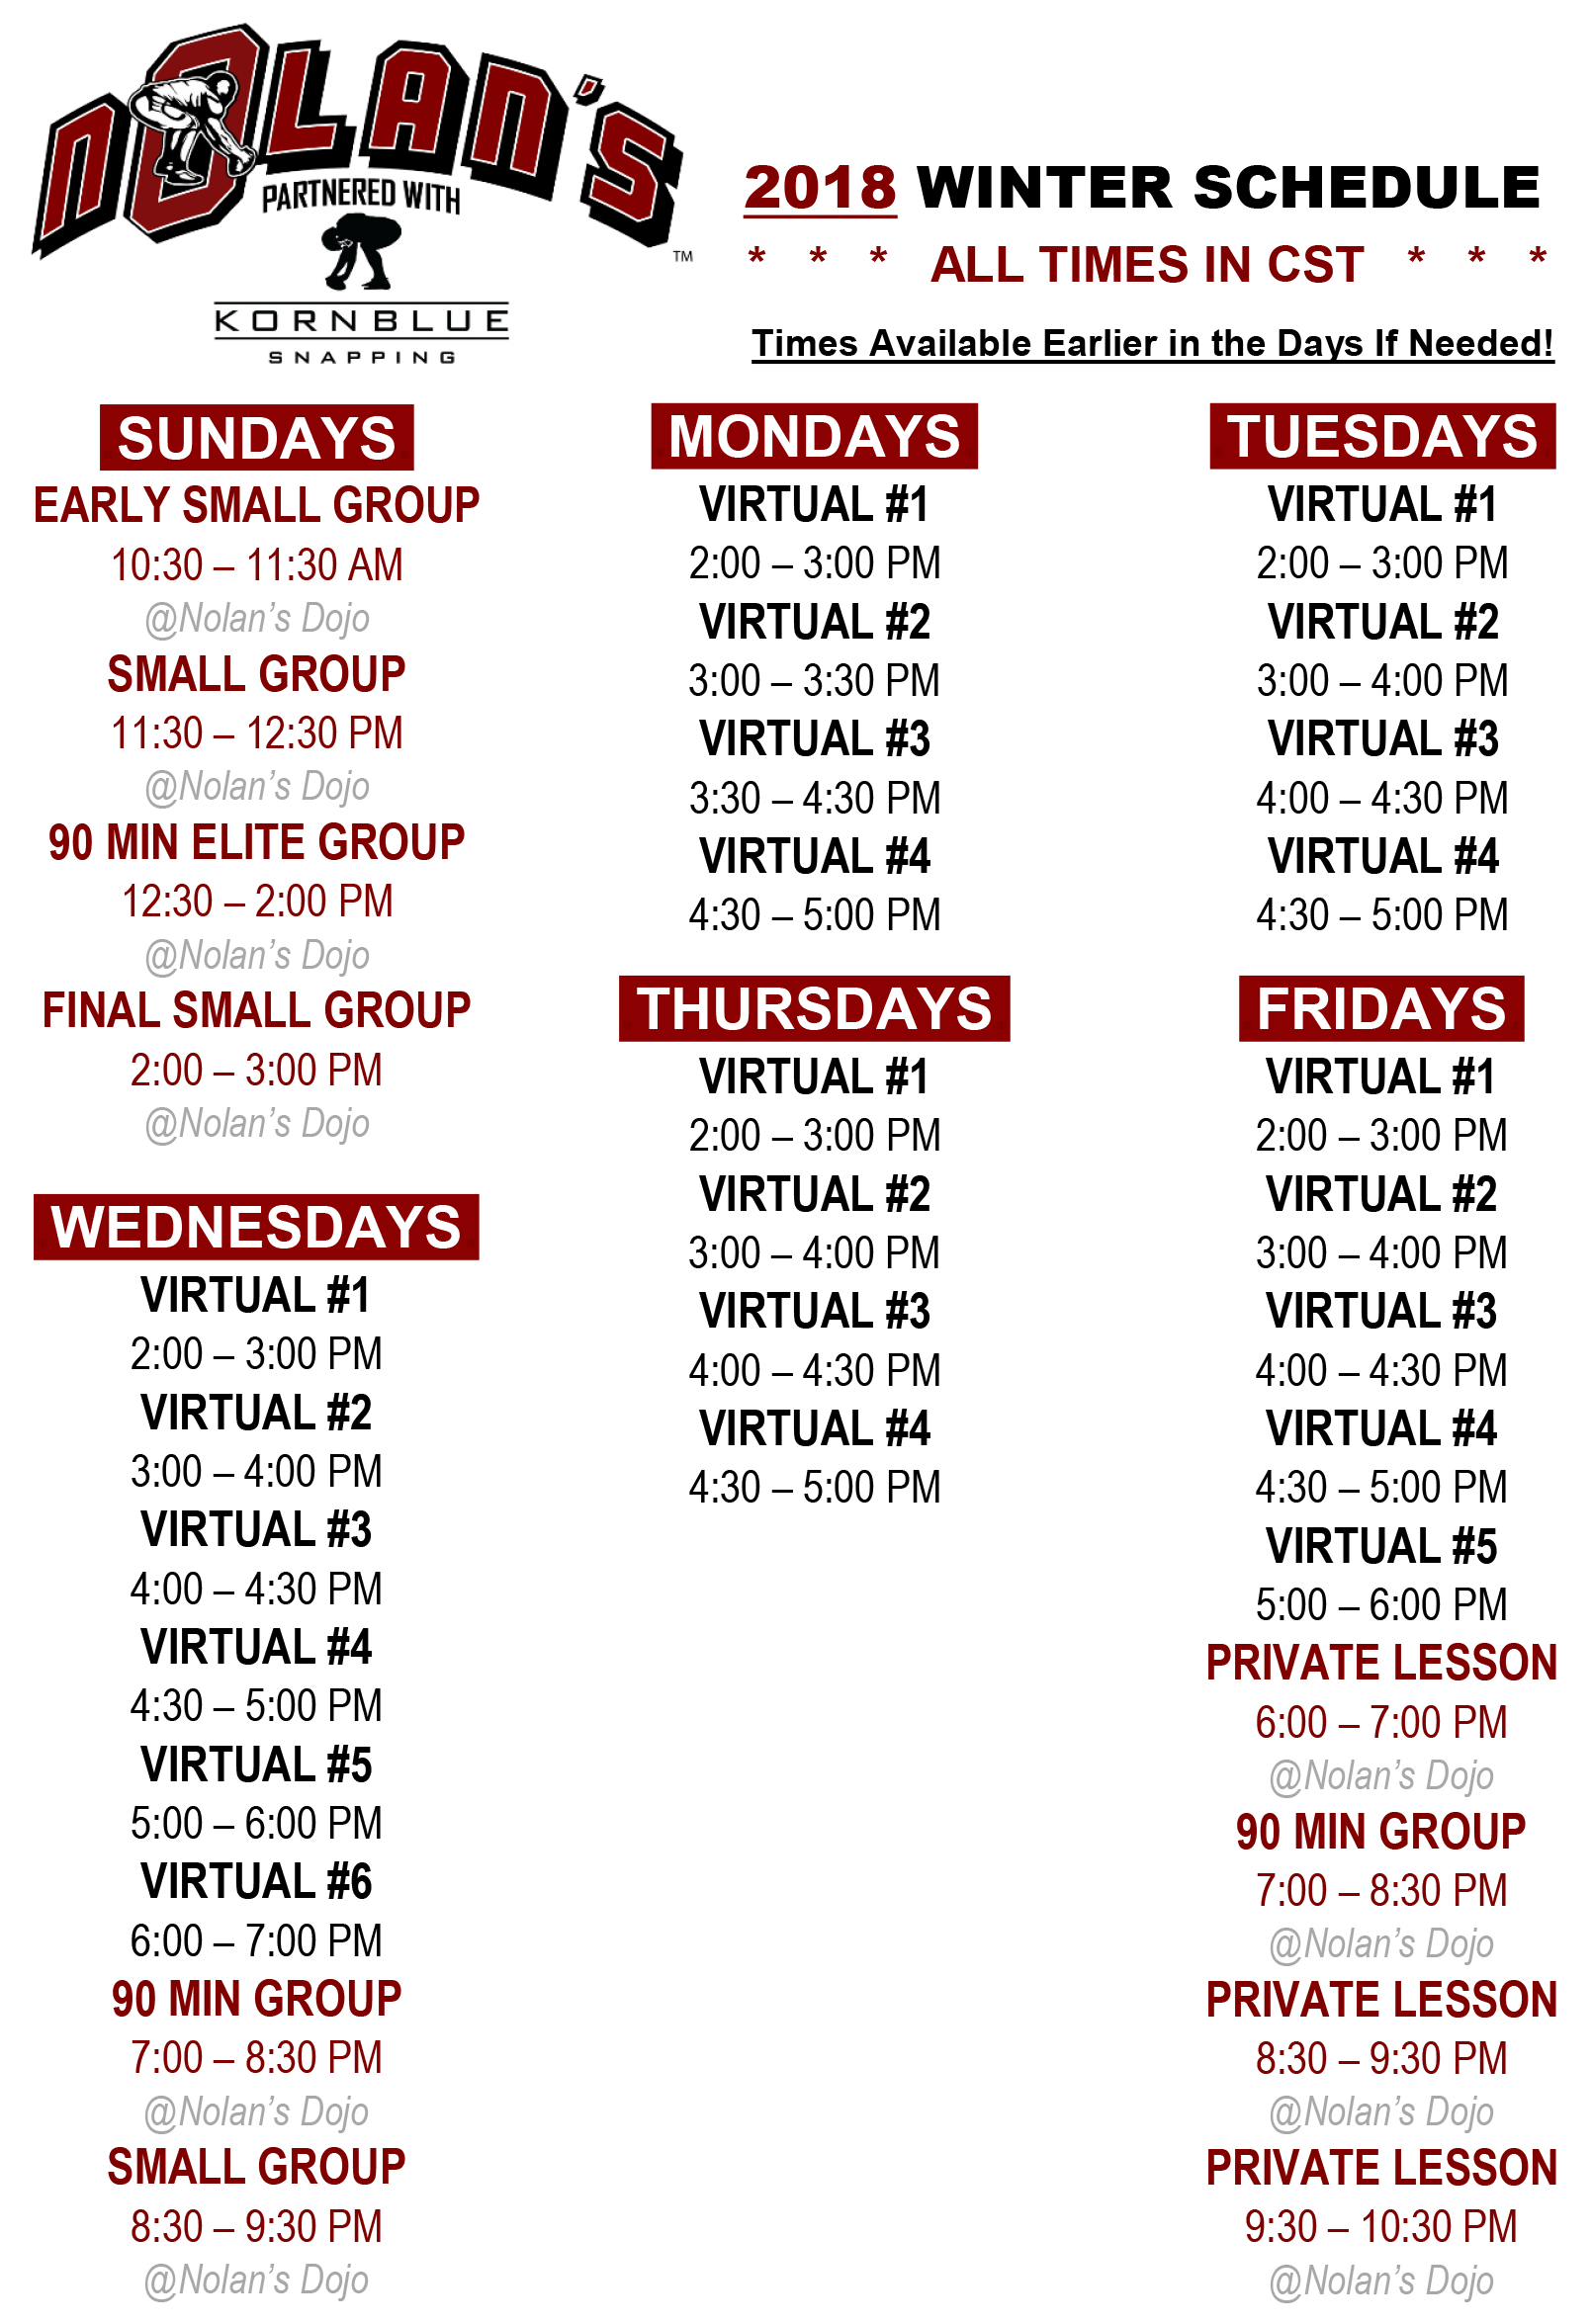 2018-NOLAN'S-LONG-SNAPPING-WINTER-SCHEDULE.png